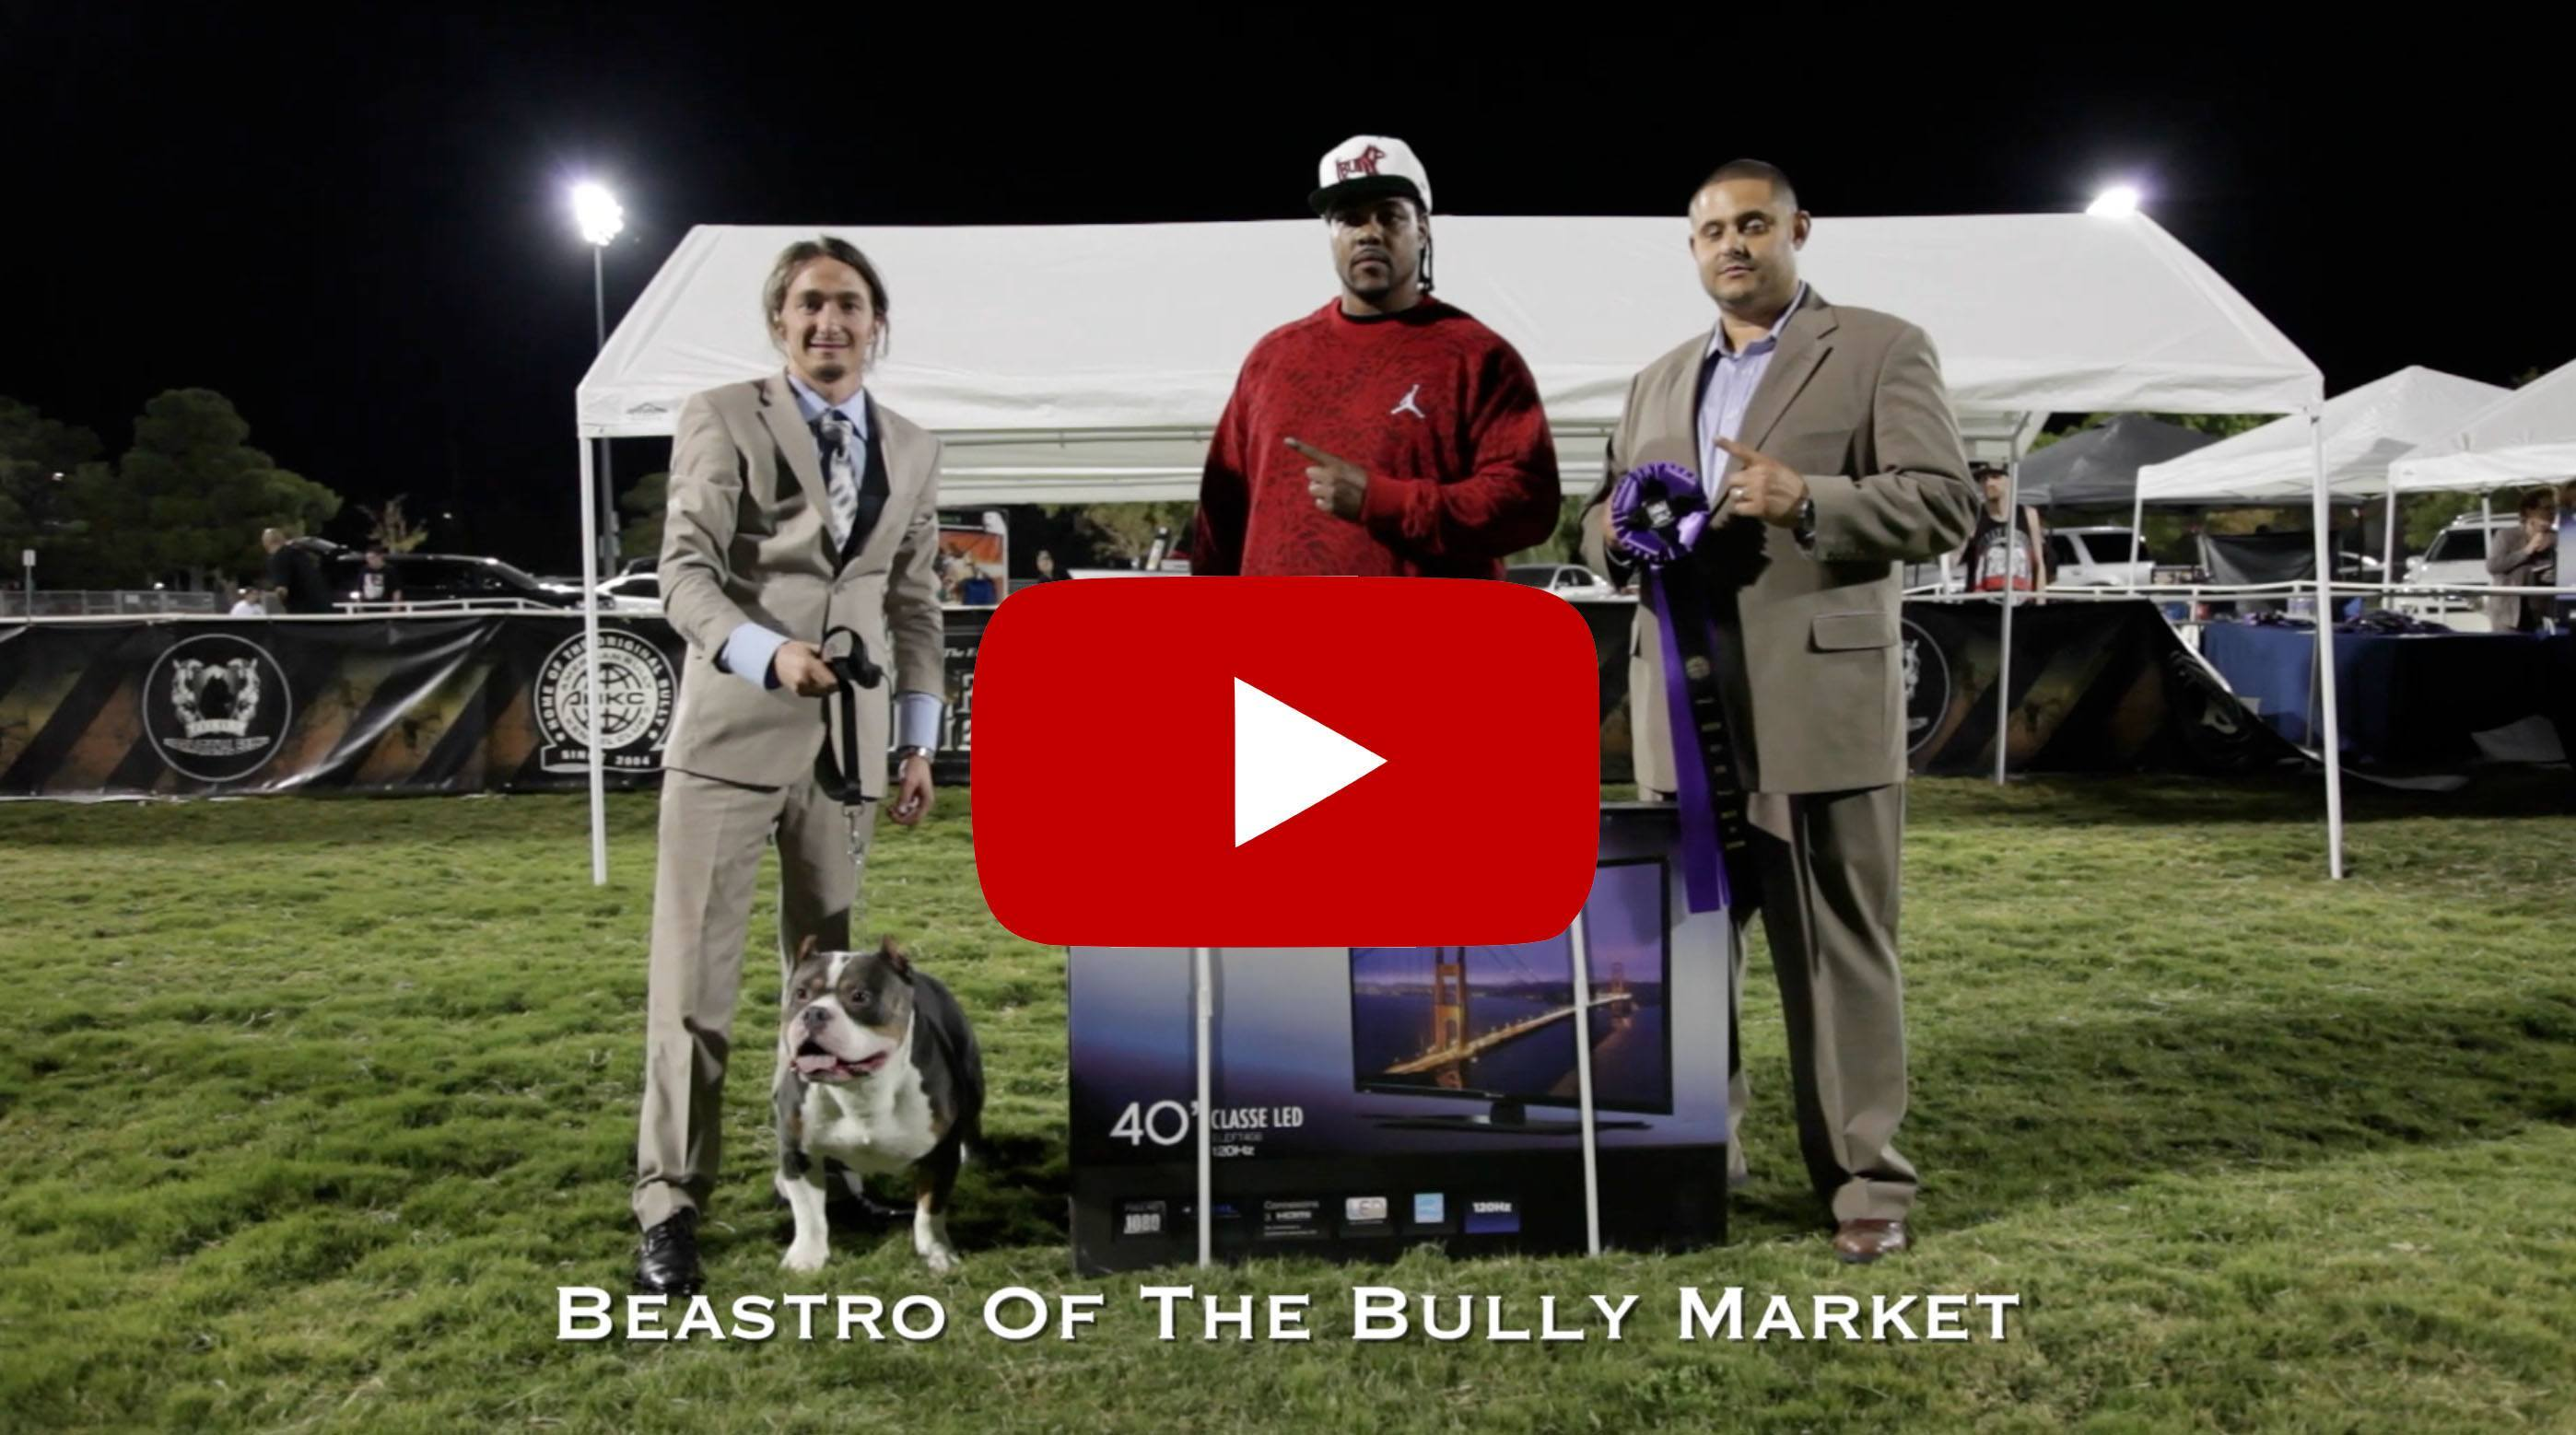 ABKC Show Results 2014 - The Battle of the Bullies